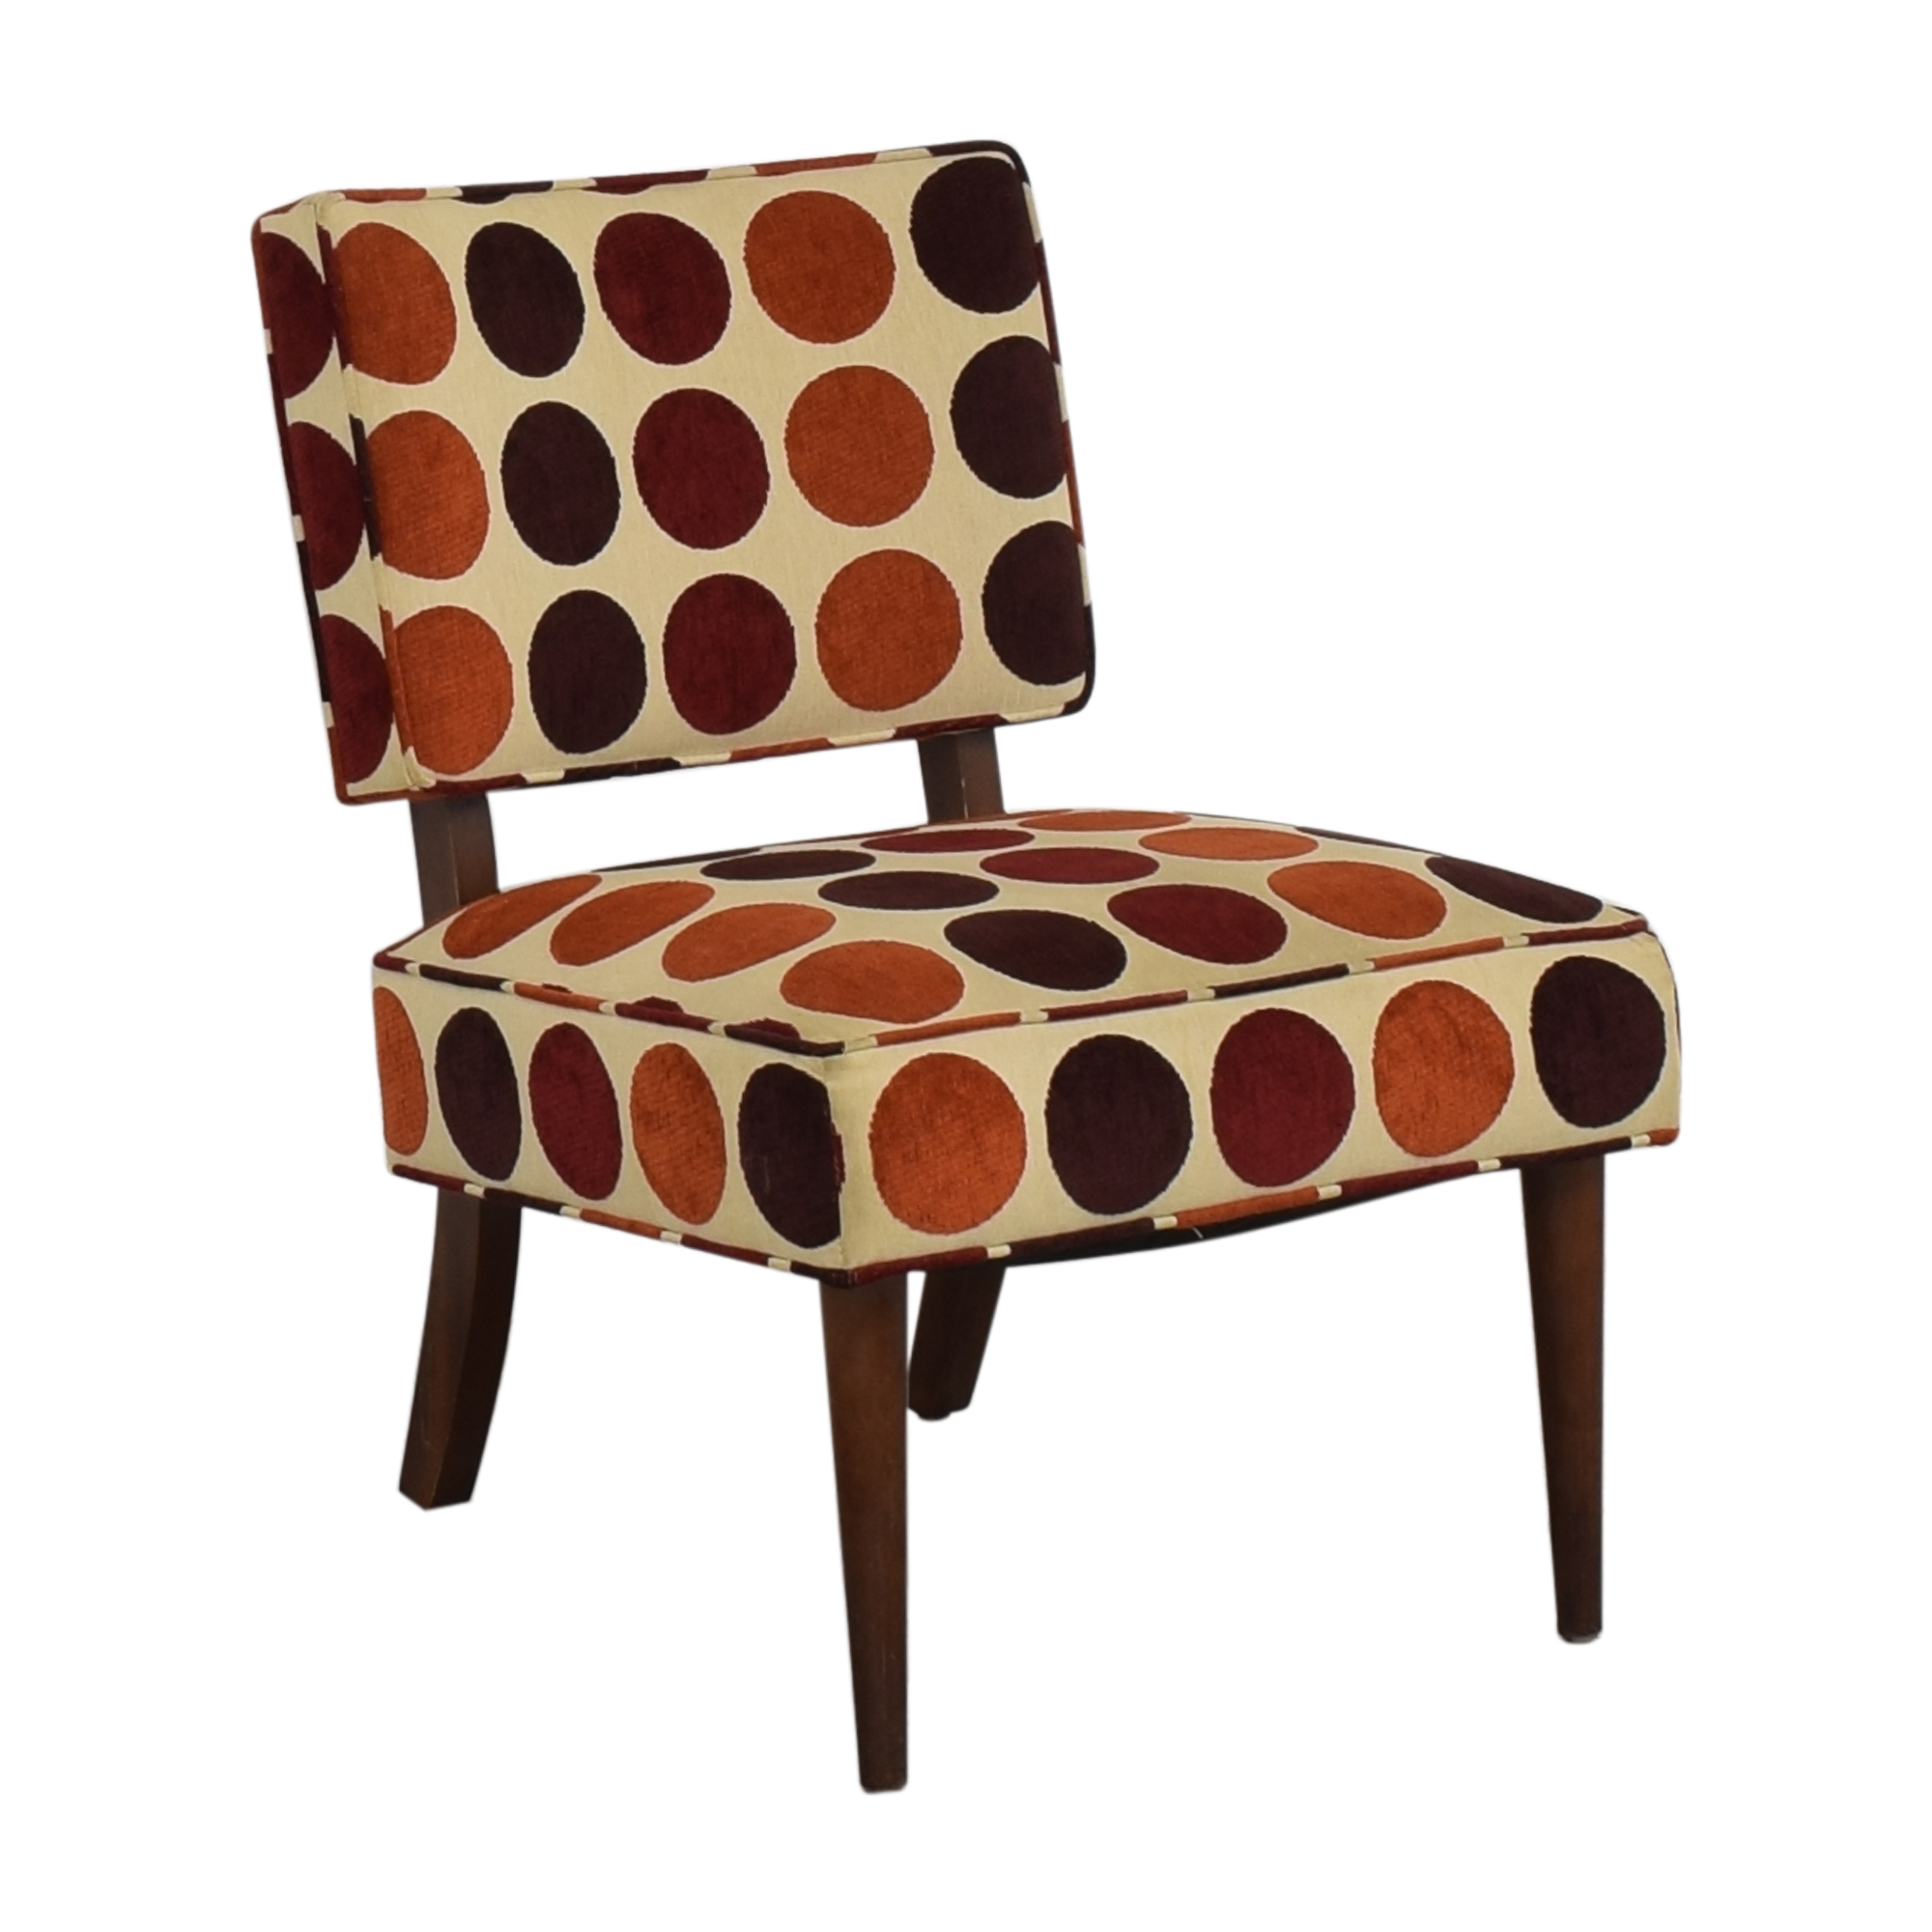 Room & Board Dot Slipper Chair / Accent Chairs